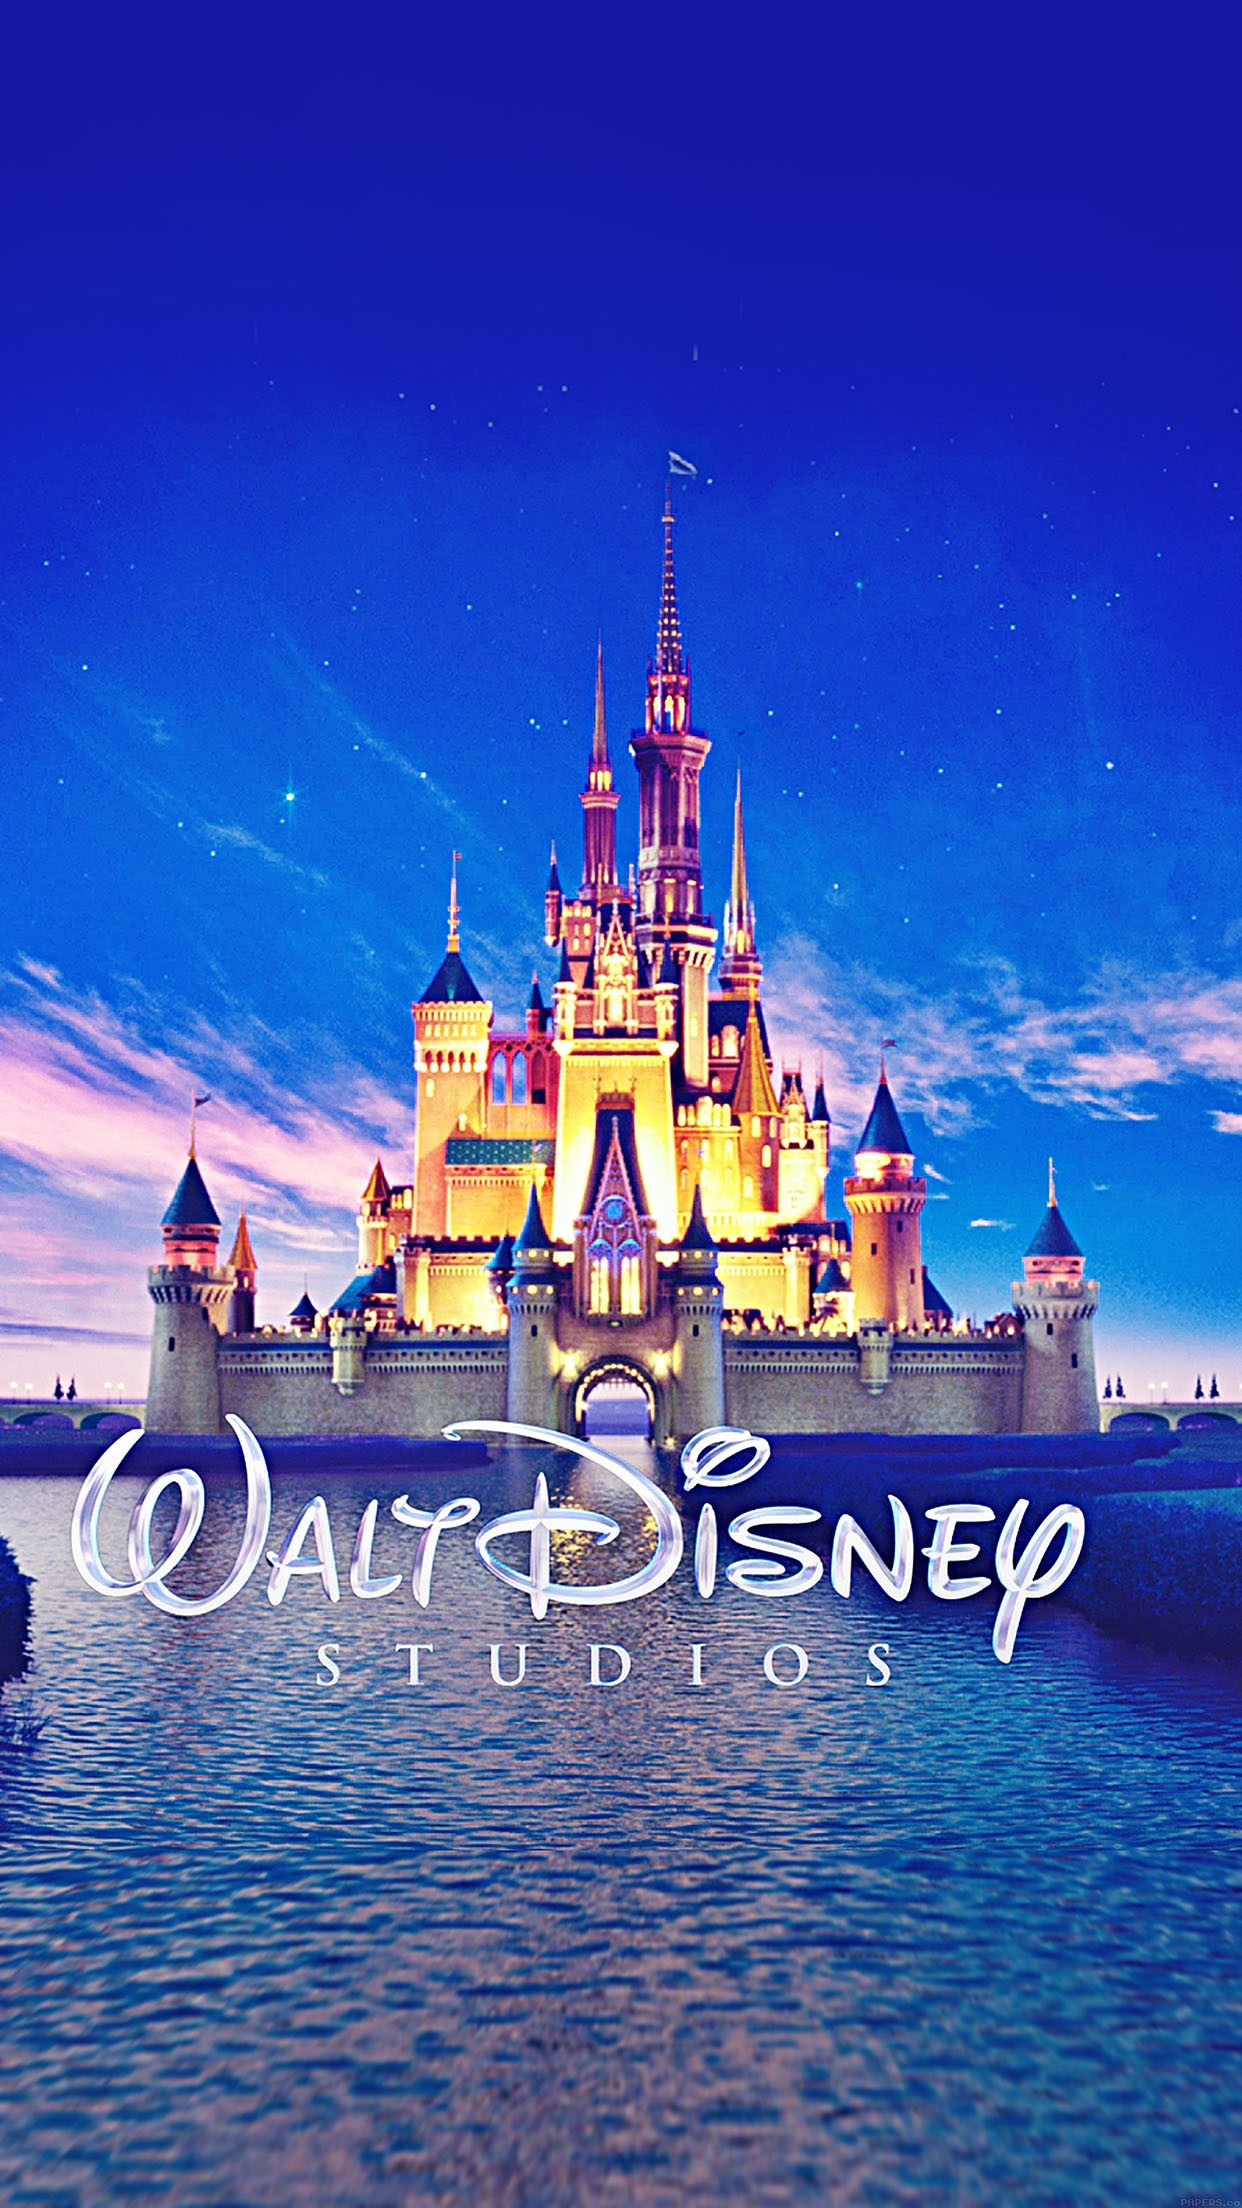 Wallpaper Iphone 5 Cartoon Disney Castle Wallpaper For Iphone X 8 7 6 Free